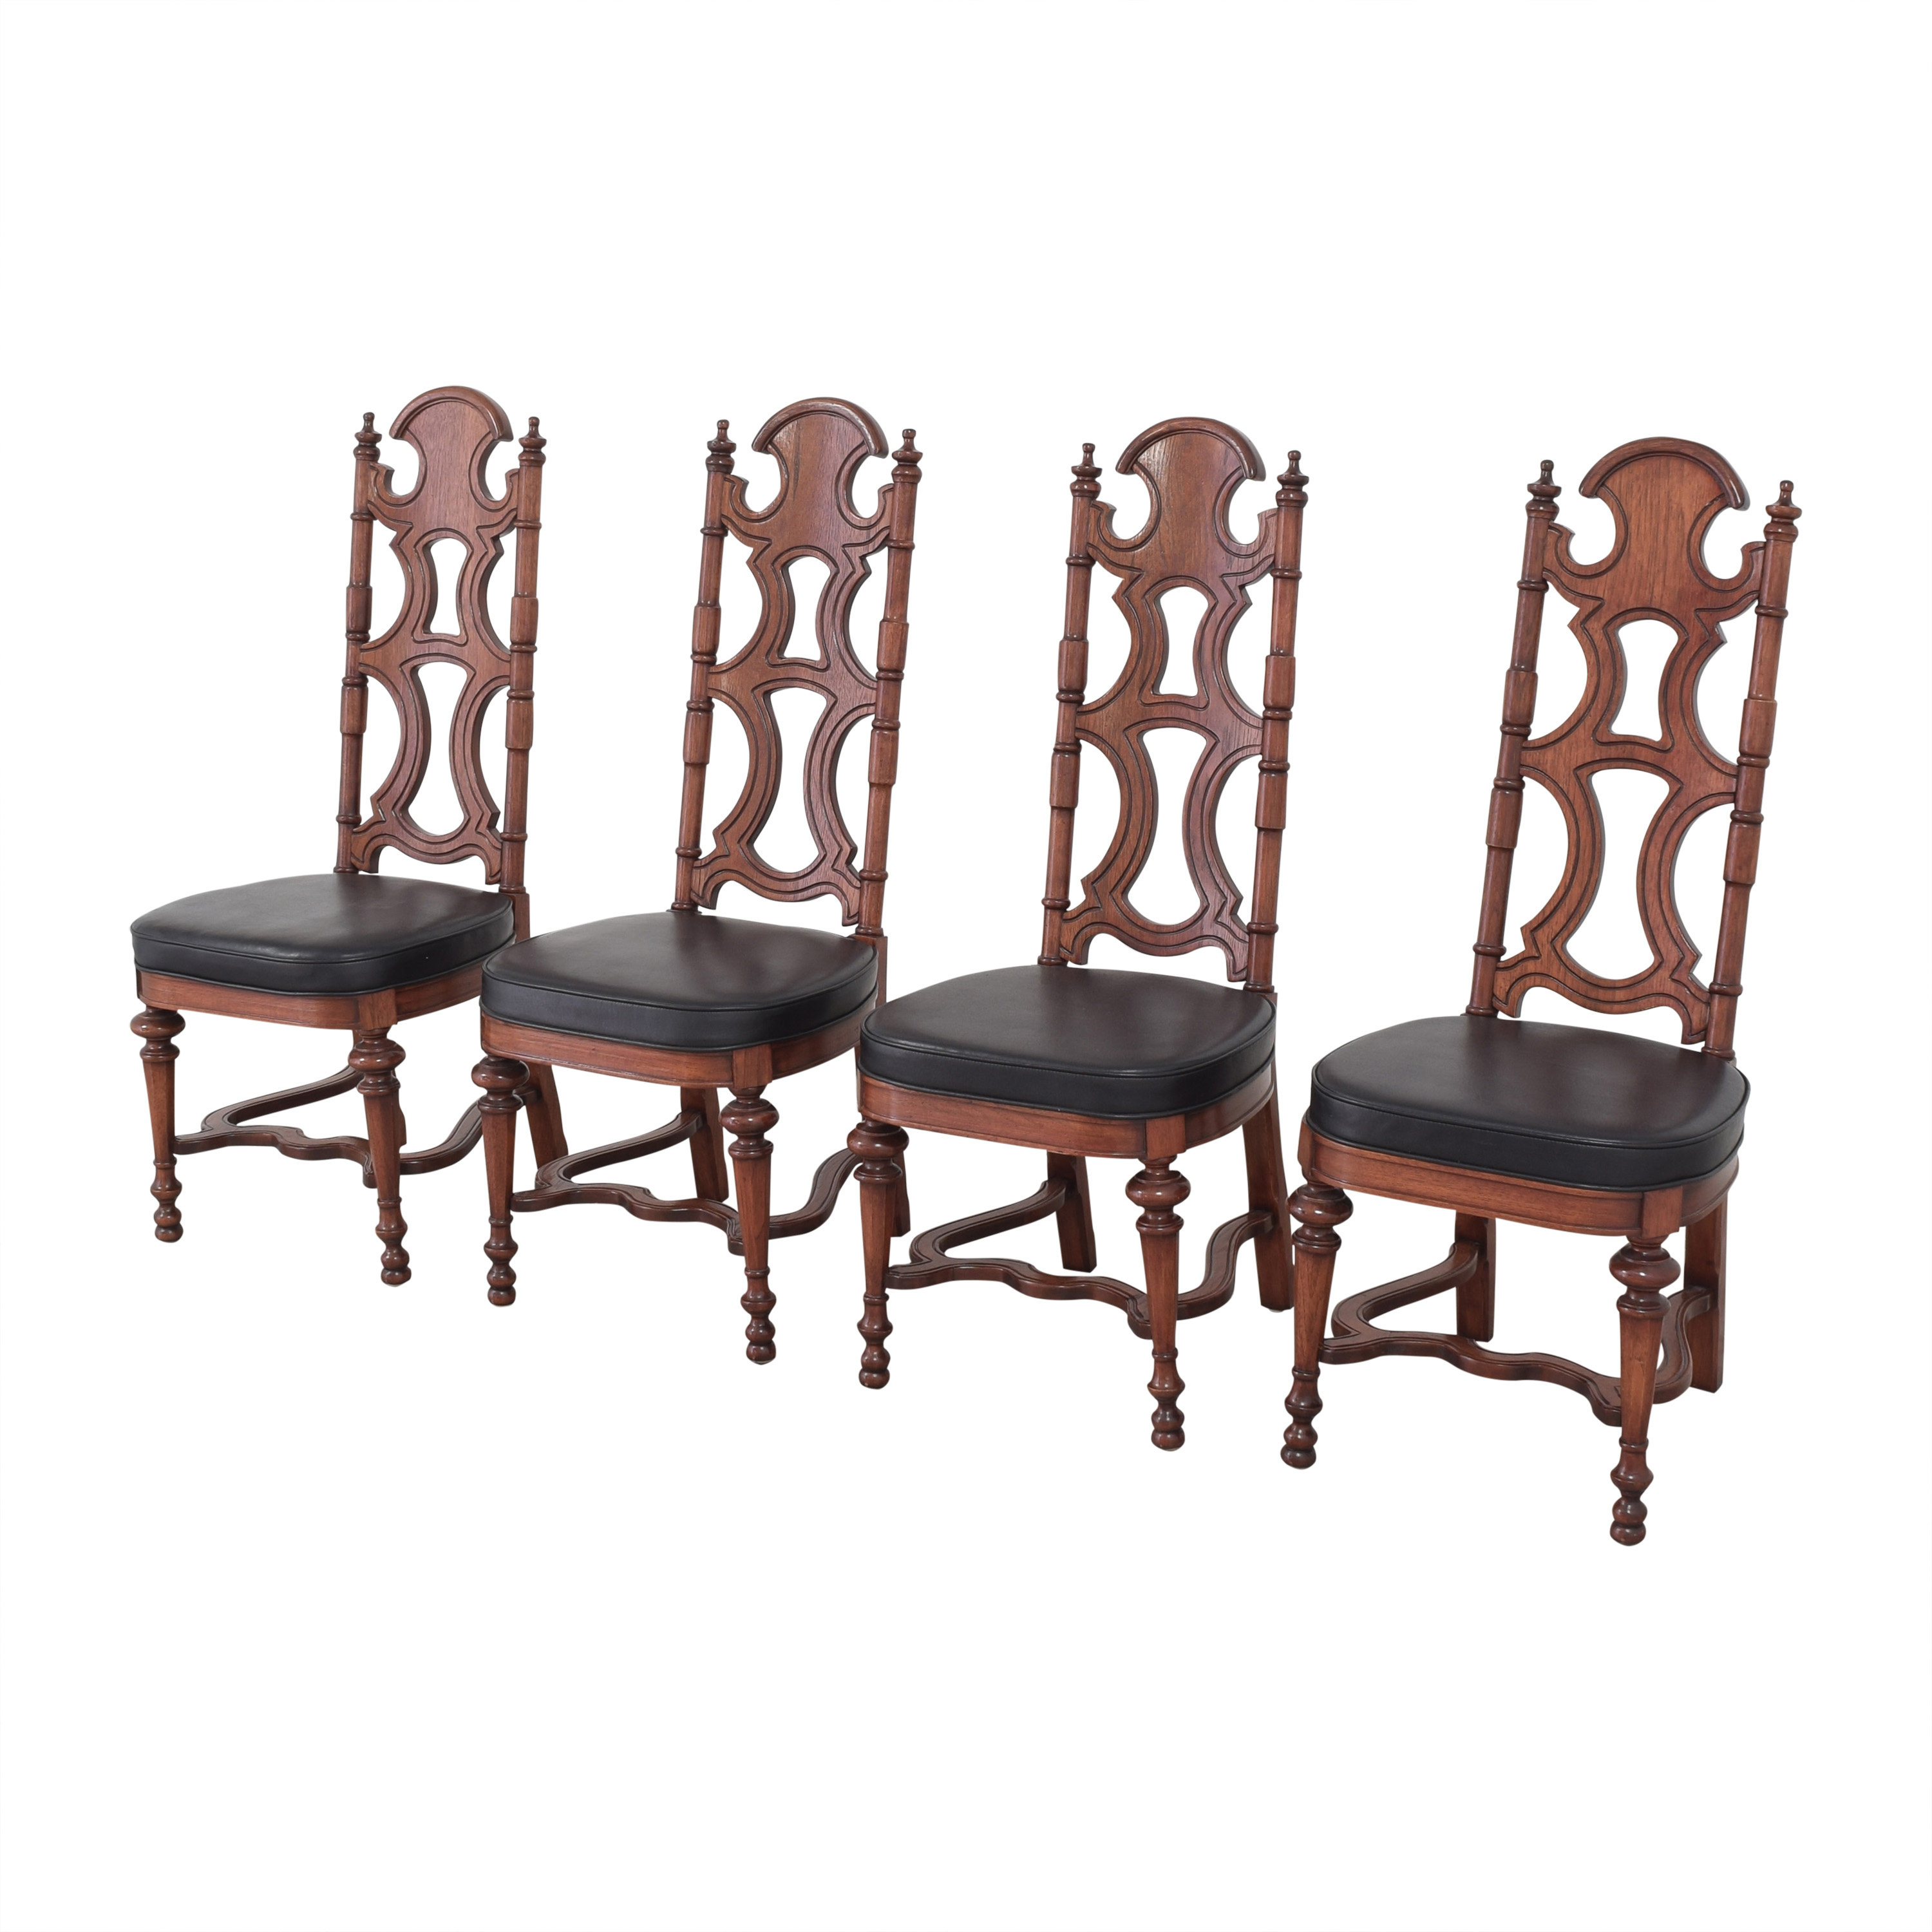 Drexel Drexel High Back Dining Chairs second hand